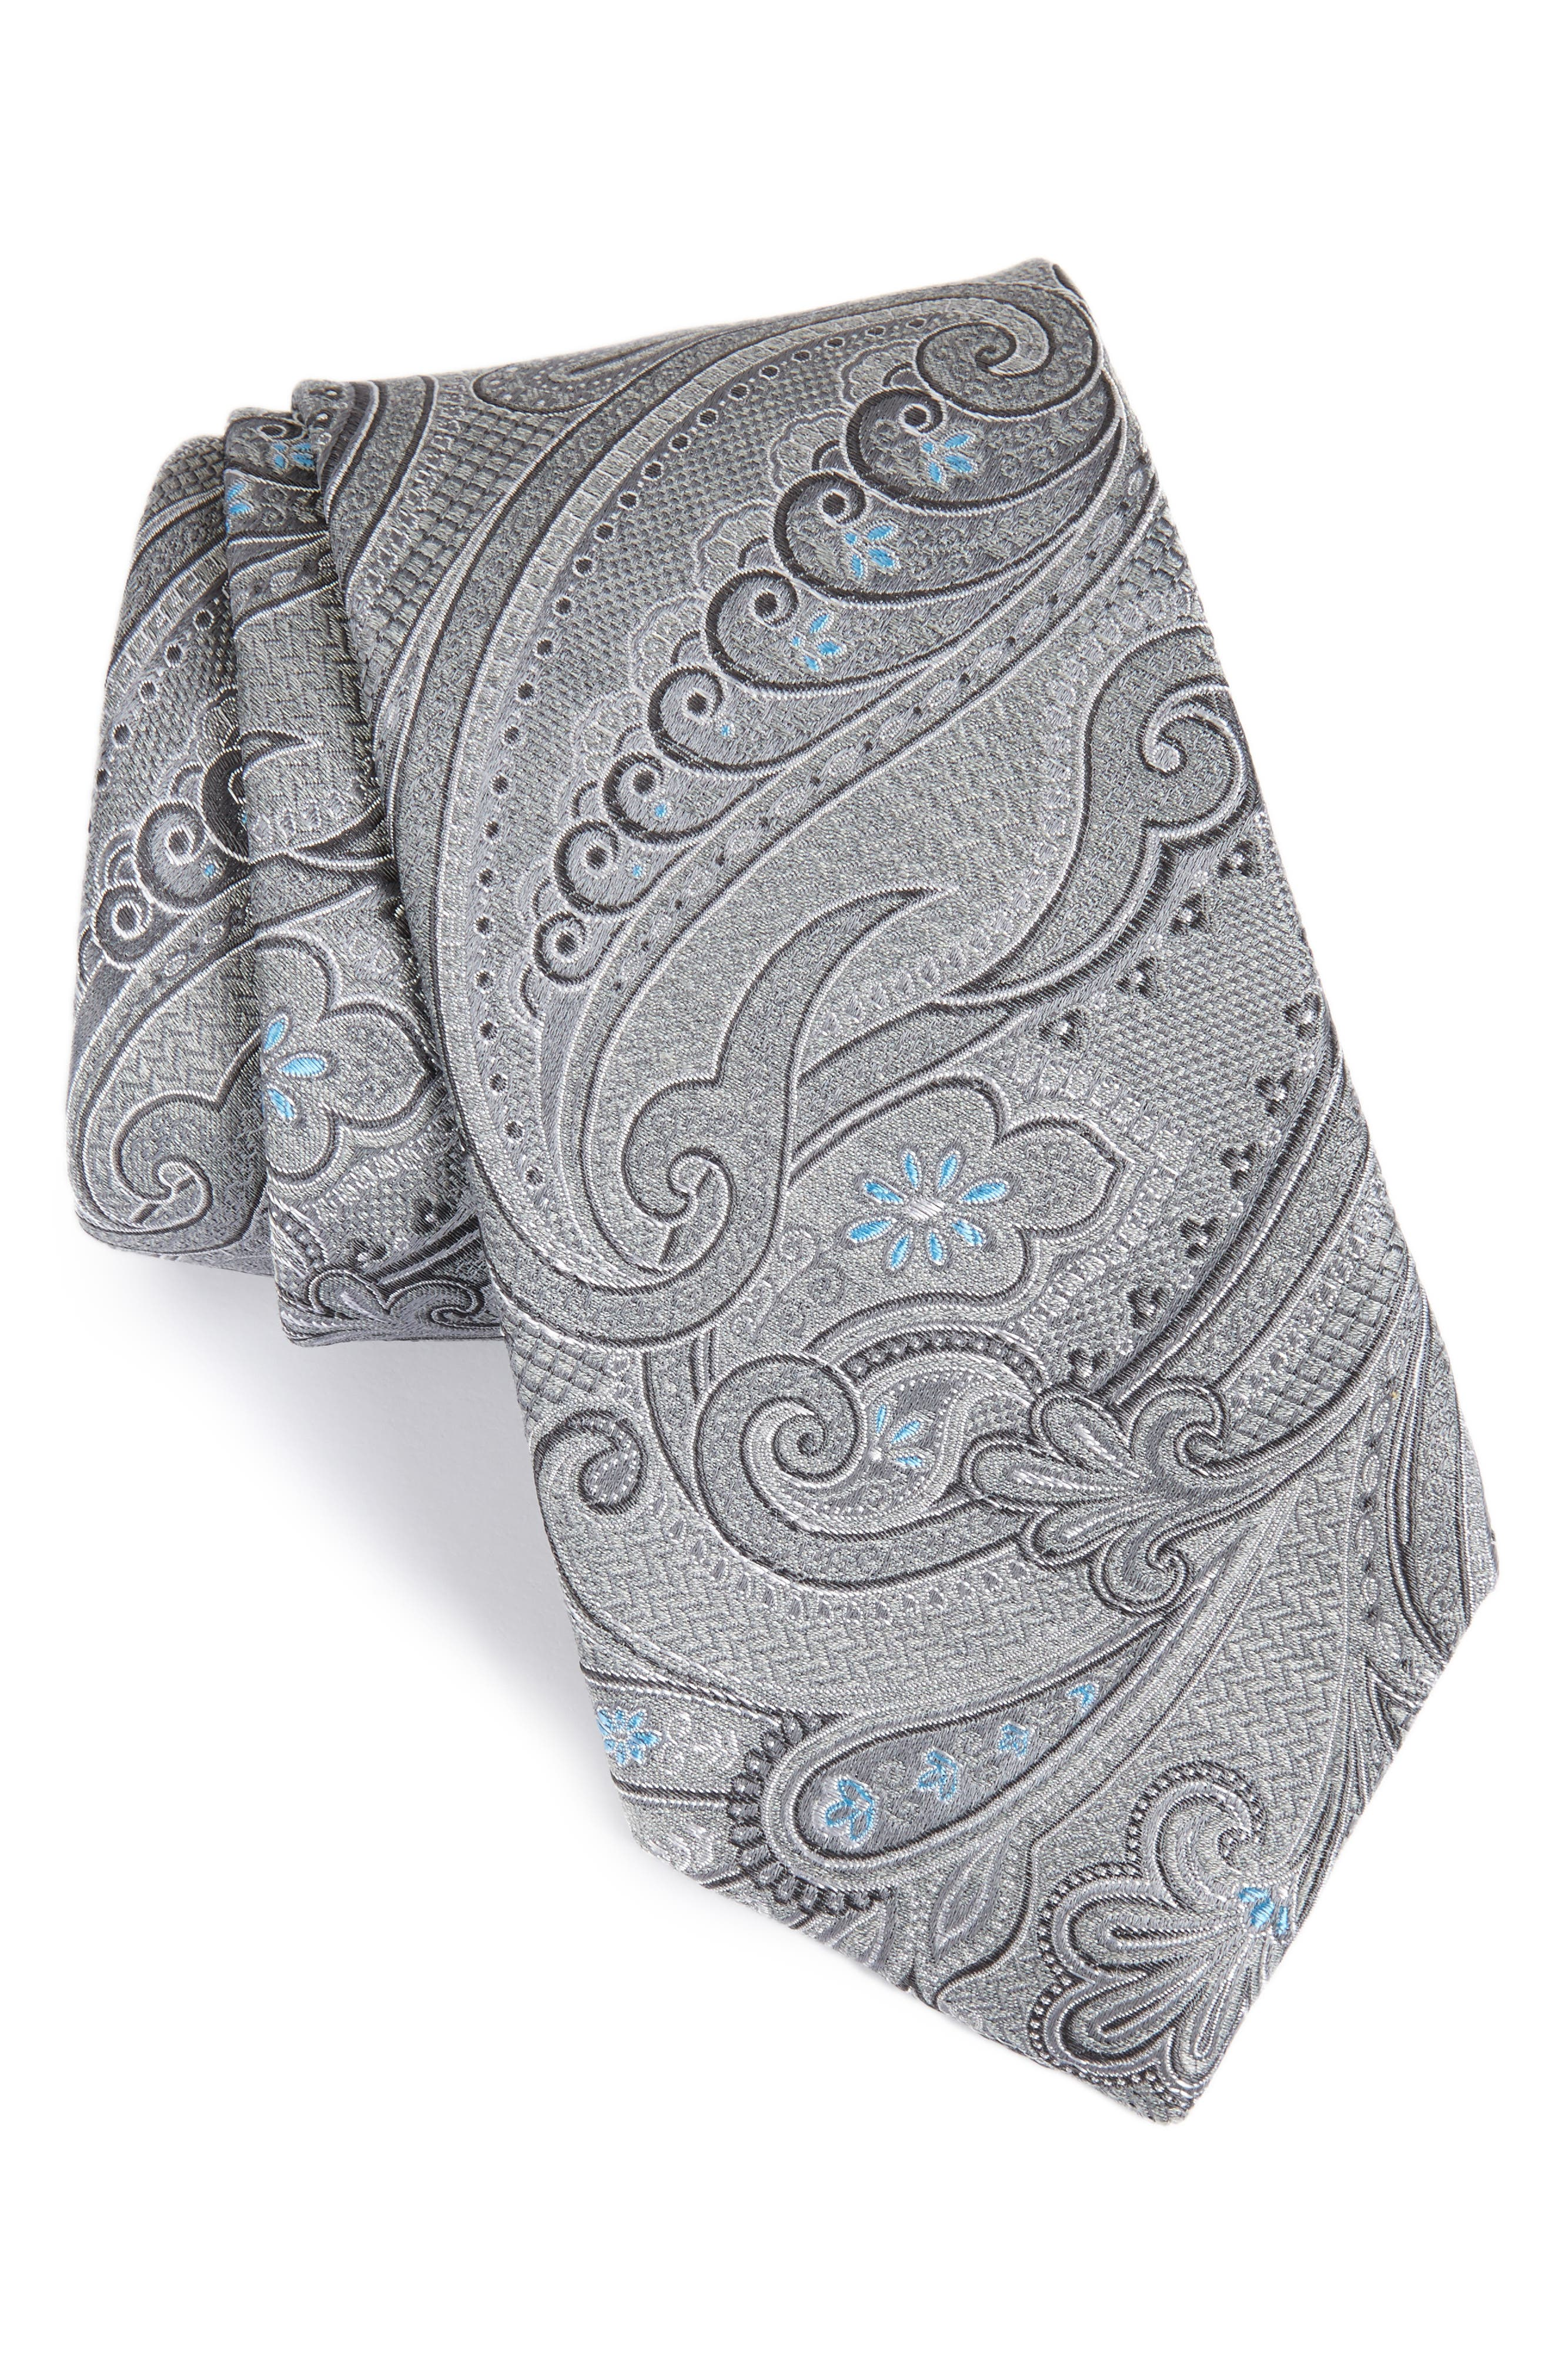 Bushnell Paisley Silk Blend Tie,                         Main,                         color, Charcoal